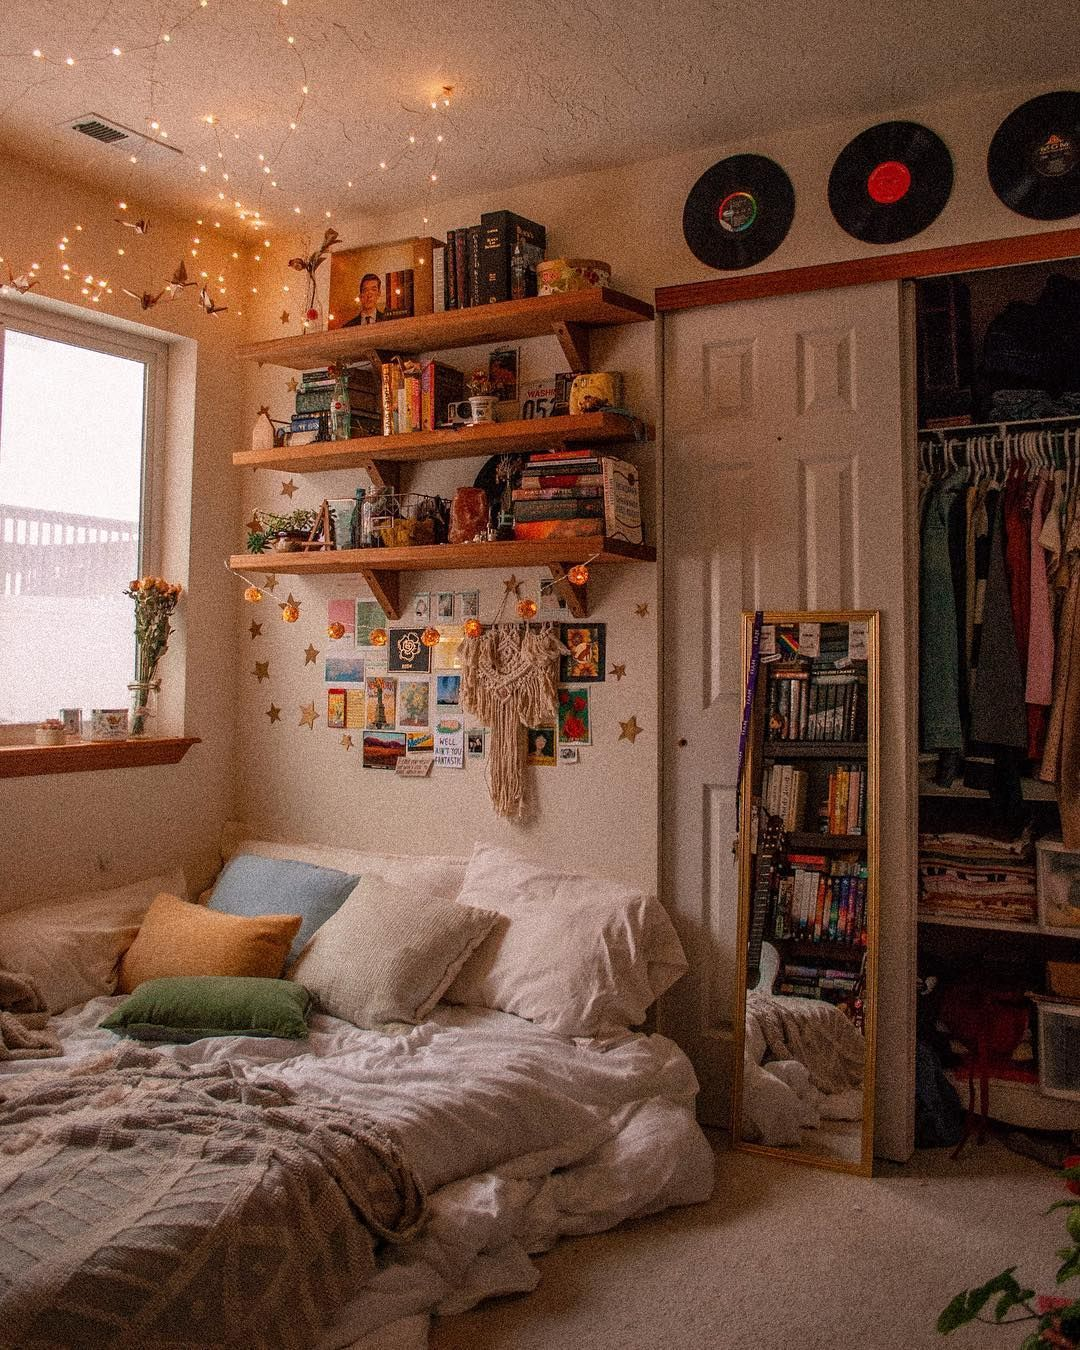 L I N H X V I I U S A On Instagram Old Things Turned New Hi This Is A Very Tired Linh Who Just Finished In 2020 Aesthetic Bedroom Aesthetic Rooms Room Decor